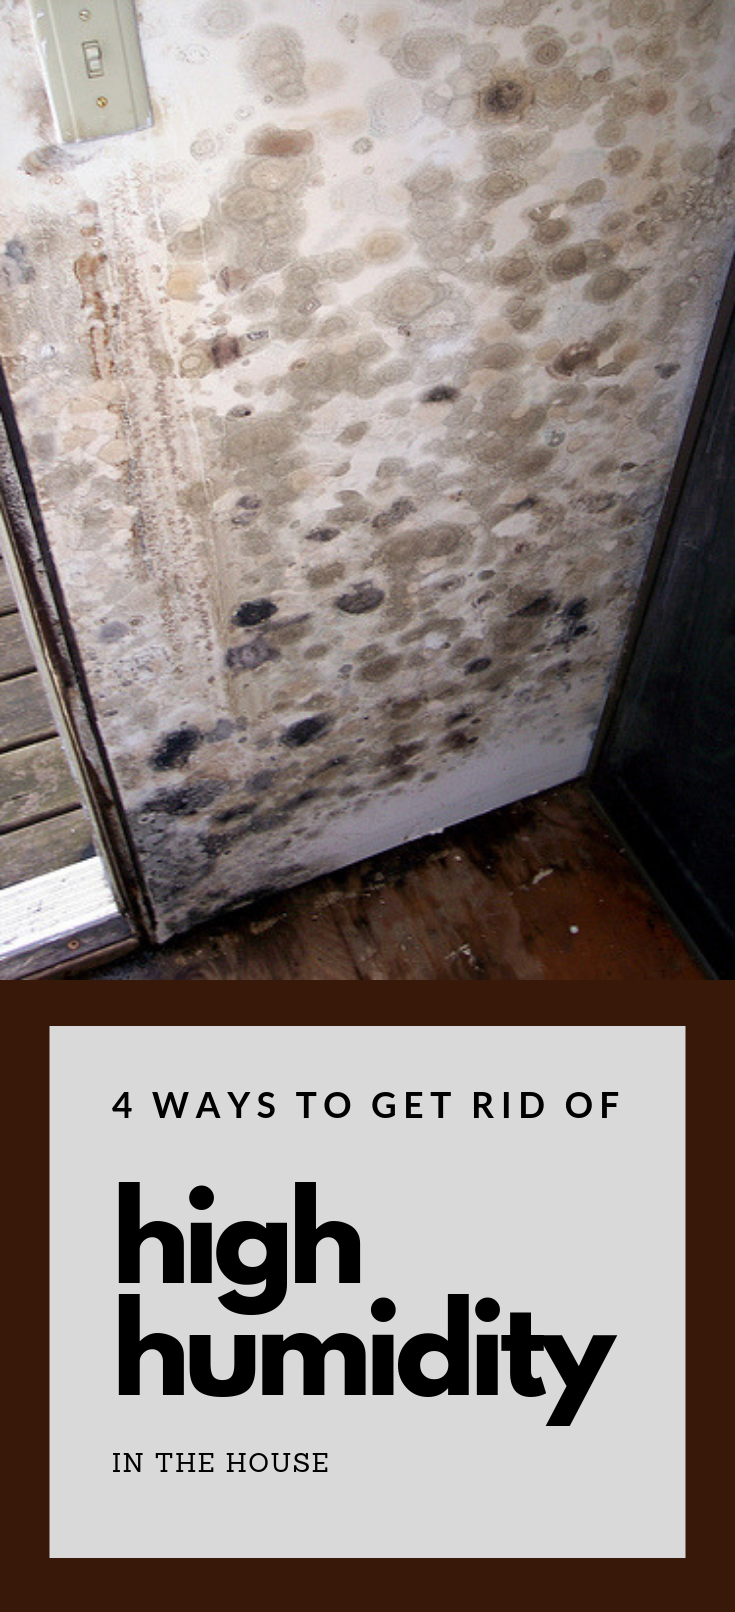 4 Ways To Get Rid Of High Humidity In The House Cleaning Homemade Shower Cleaner Cleaning Hacks